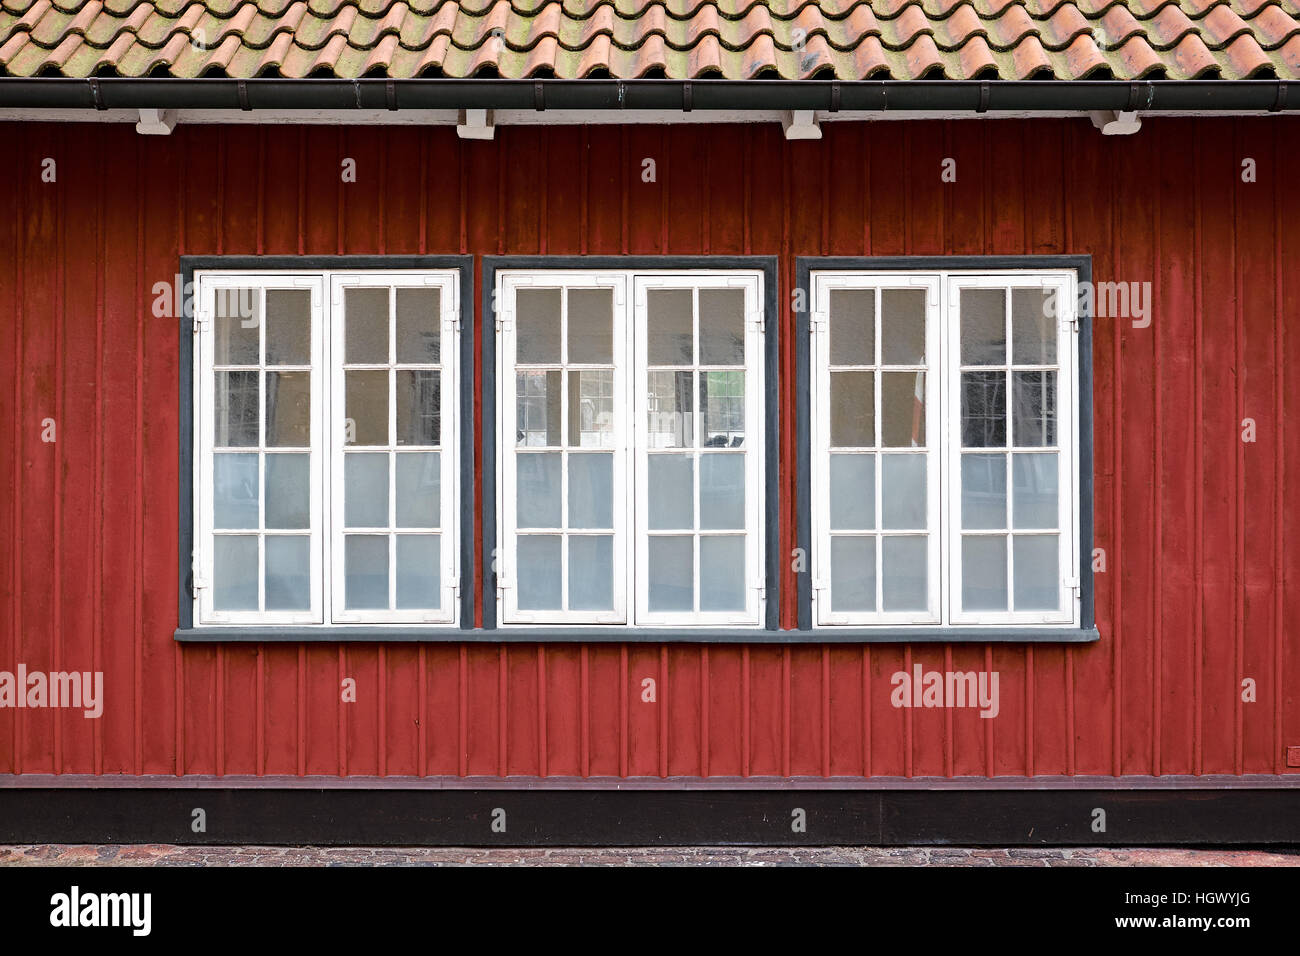 Three white painted casement windows with partly frosted glazing, in a red painted wood plank facade - Stock Image